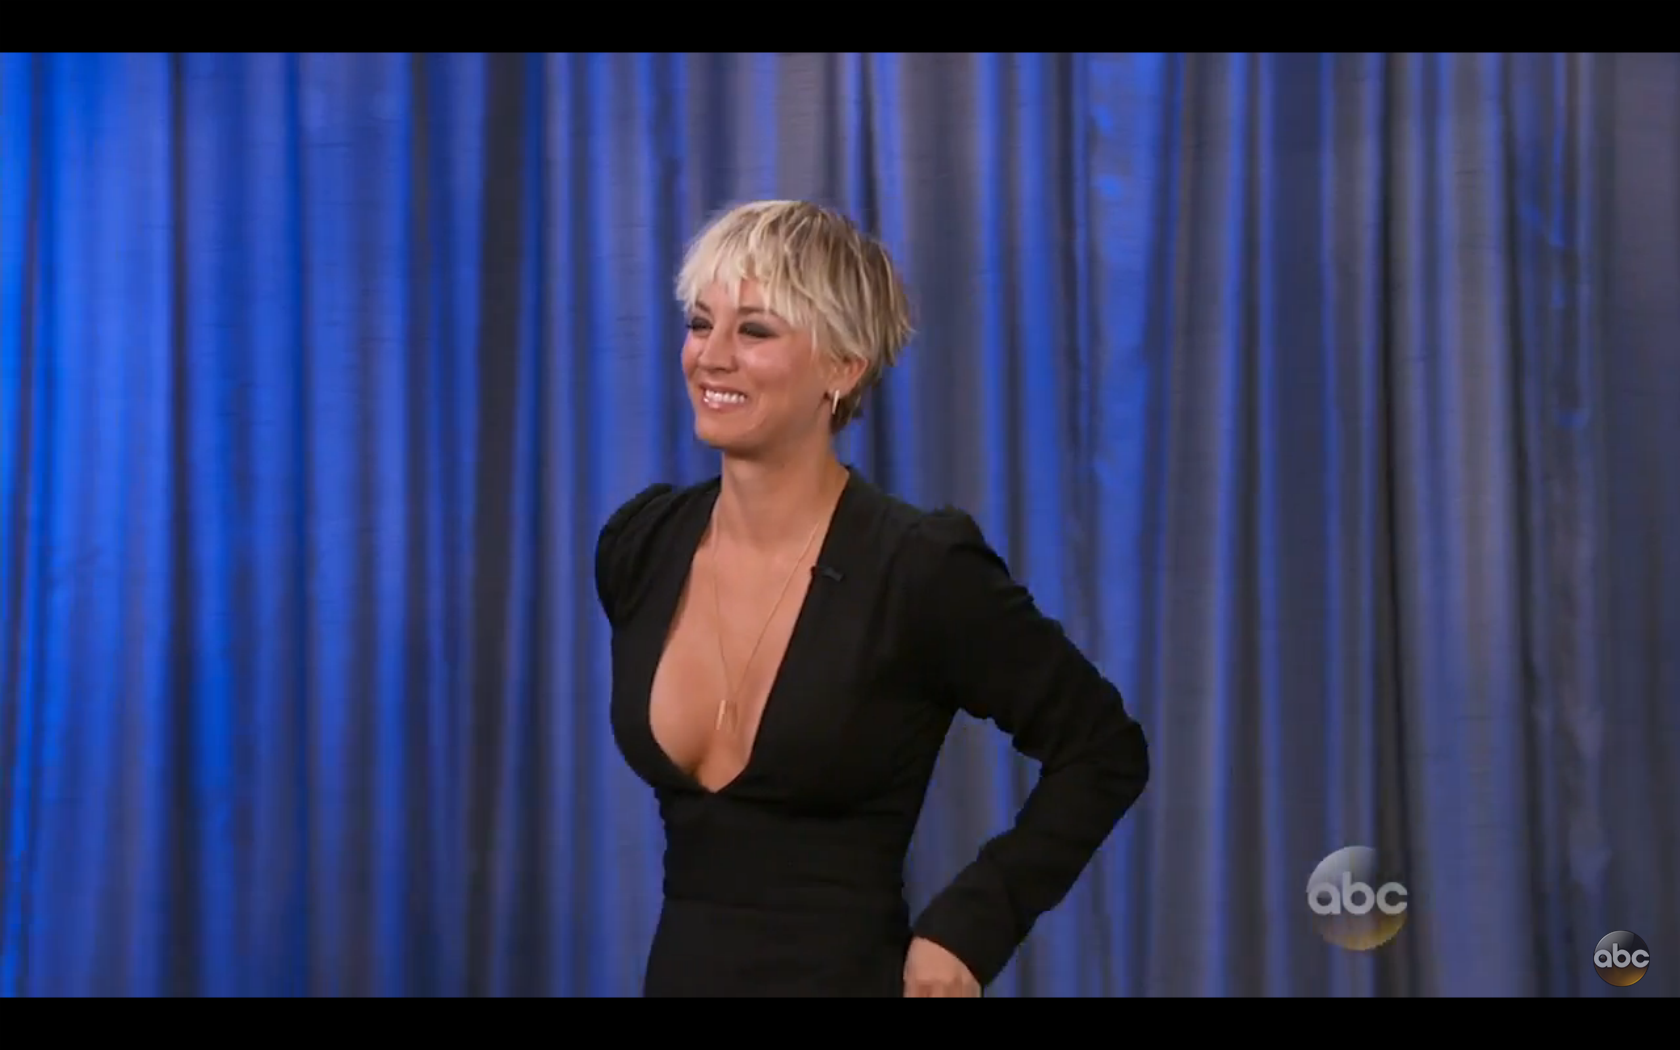 Kaley Cuoco in Fall 14 Jumpsuit